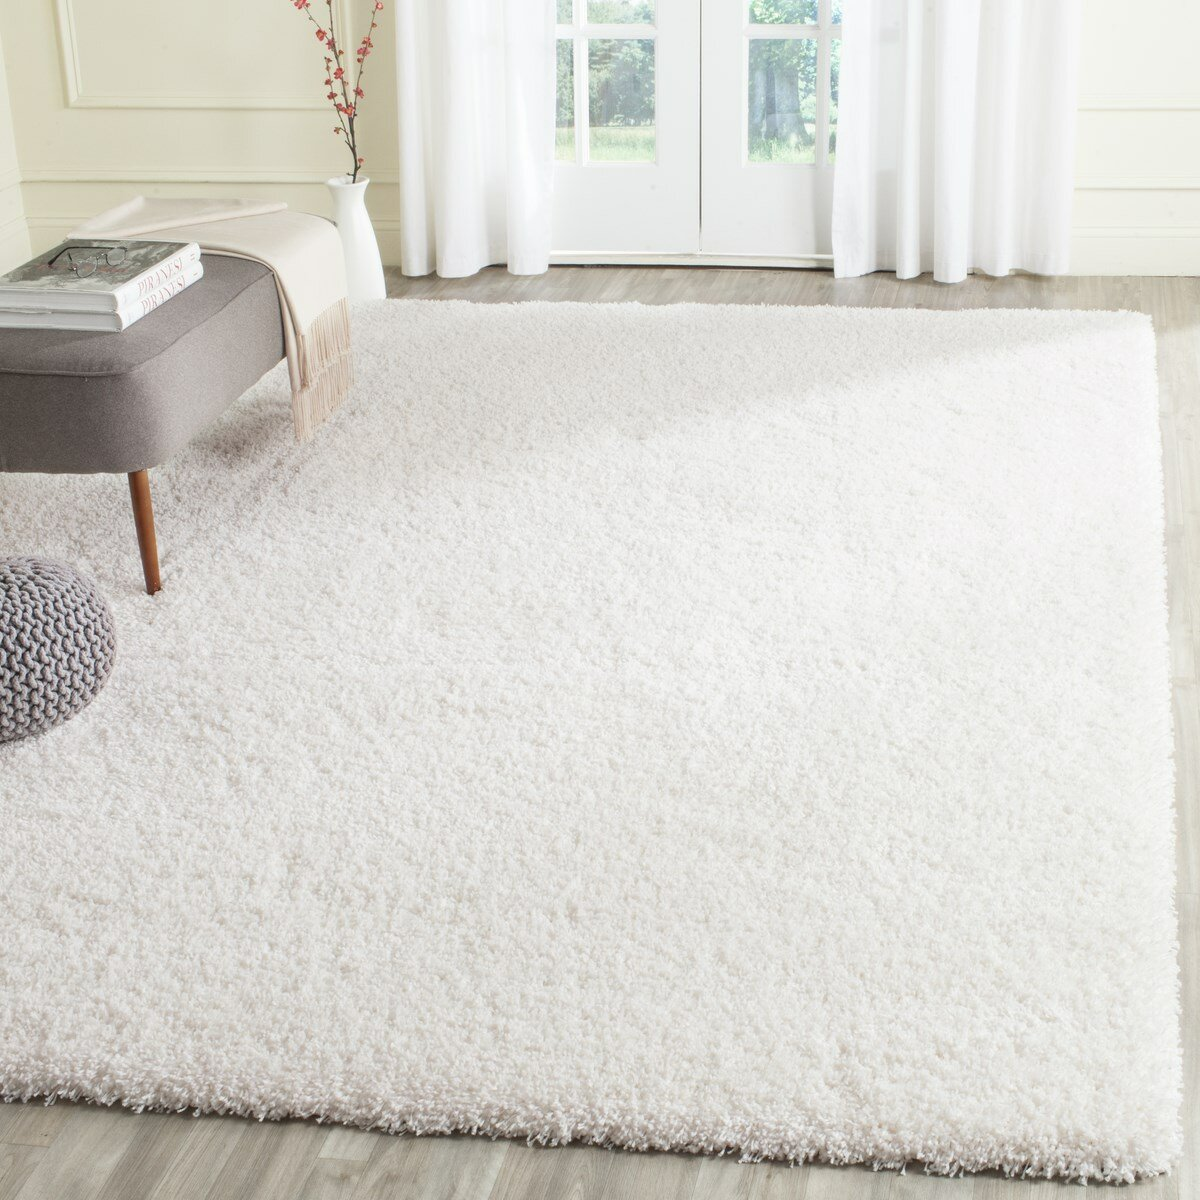 Safavieh Shag White Area Rug Amp Reviews Wayfair